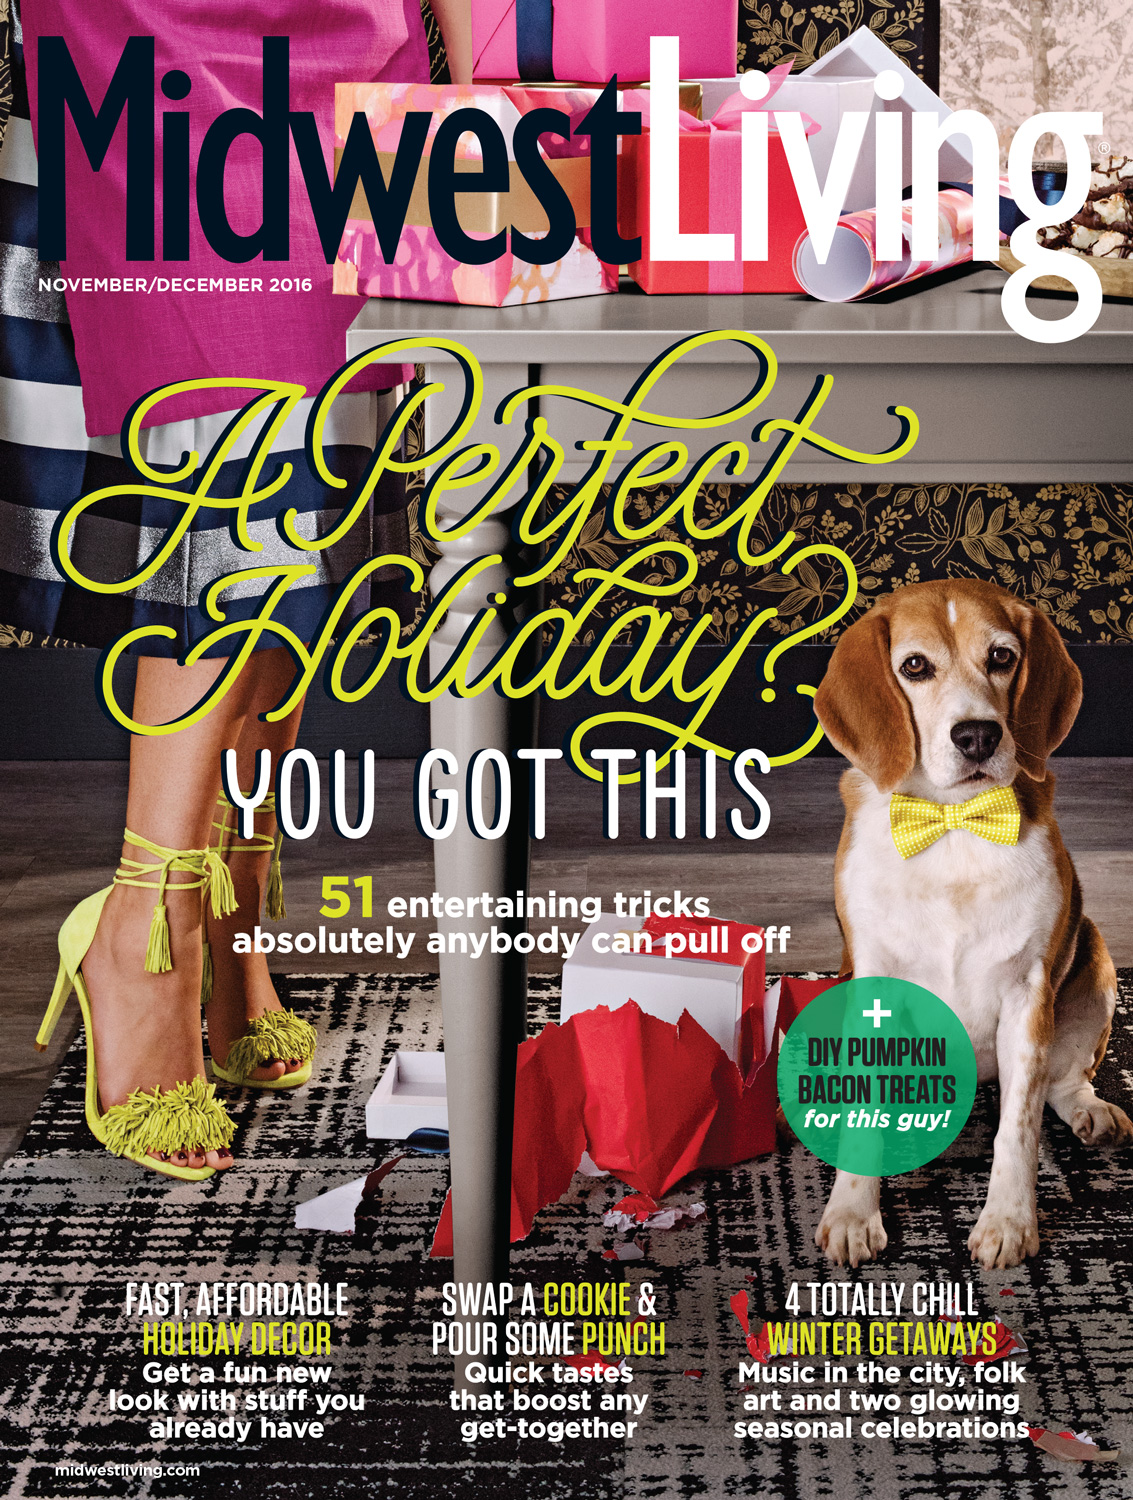 Midwest Living November-December 2016 Cover.